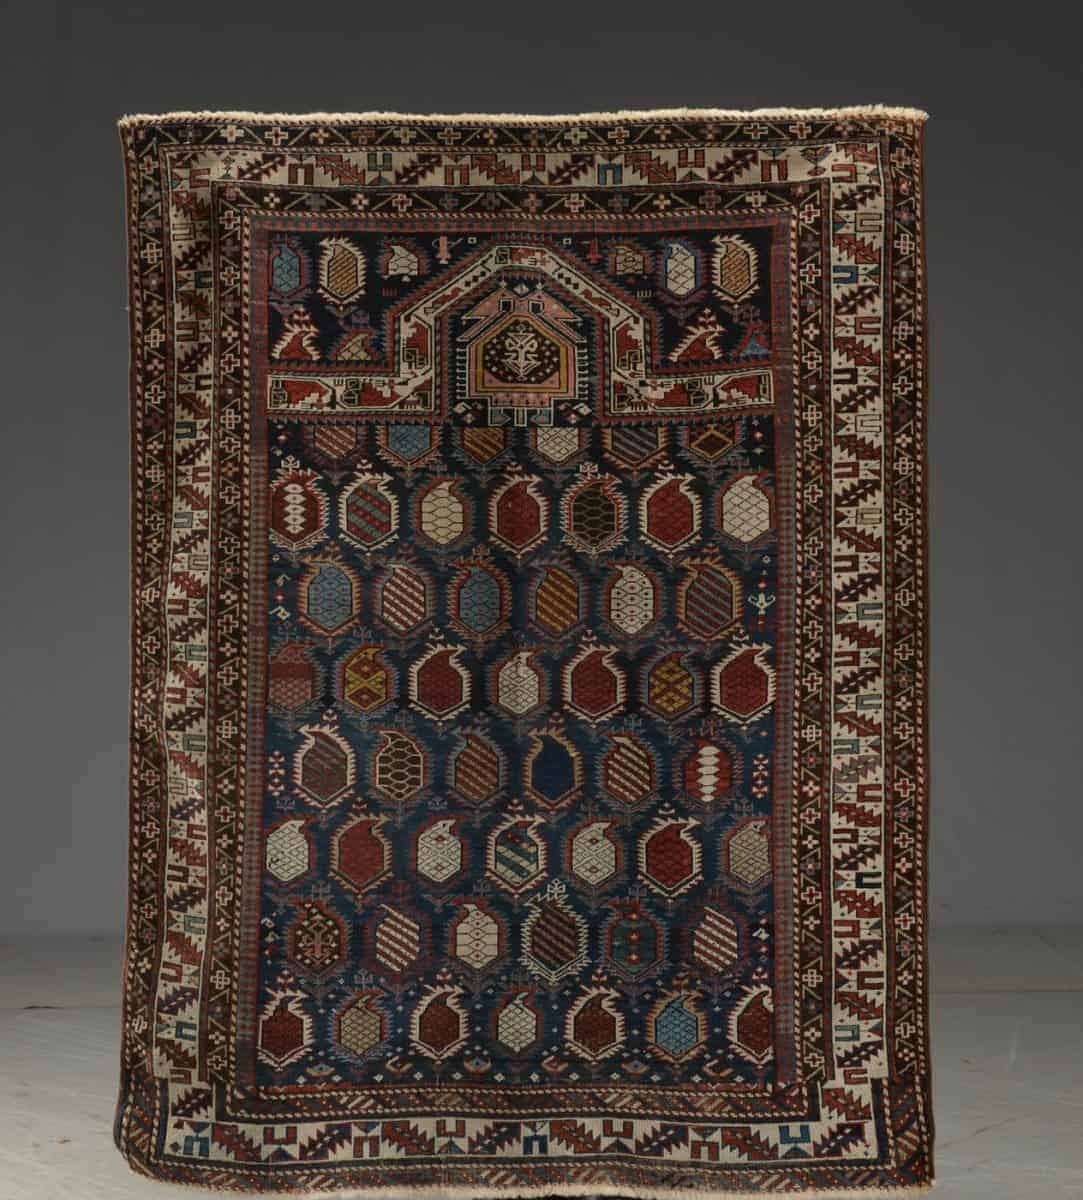 Antique Caucasian Marasali prayer rug